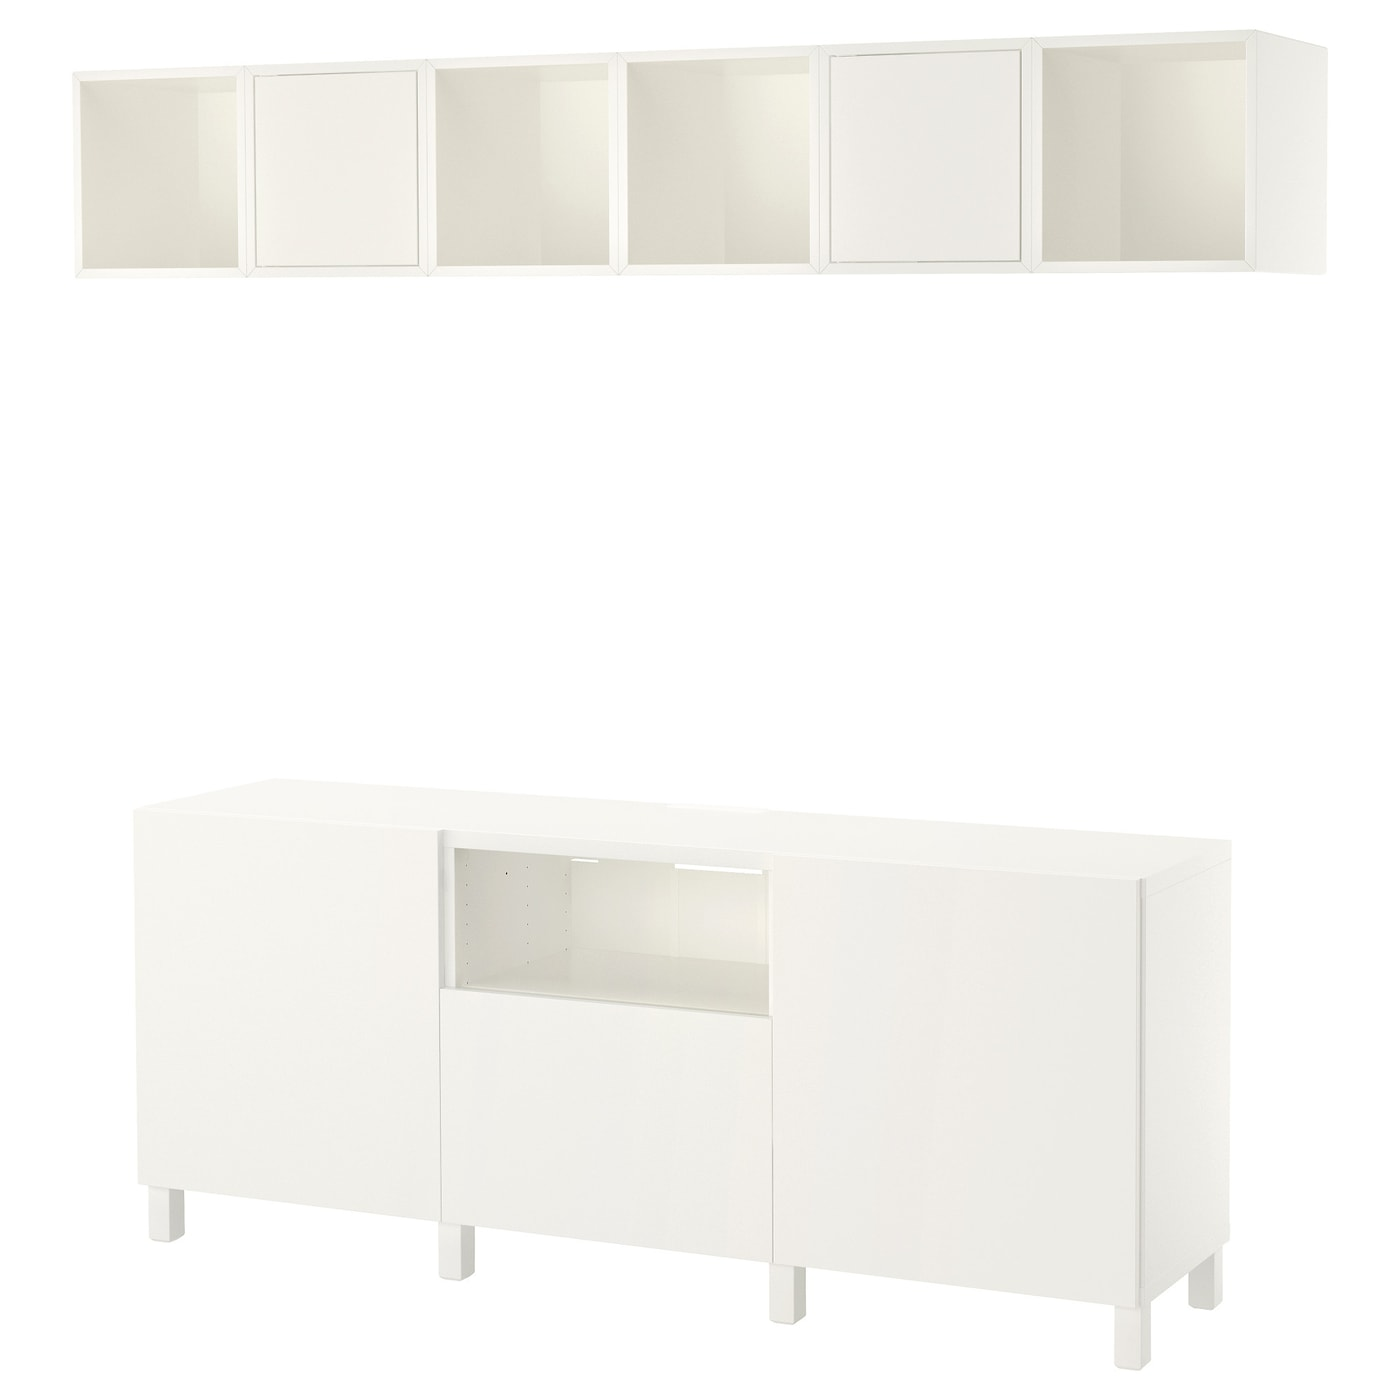 eket best combinaison rangement tv blanc 210x40x220 cm ikea. Black Bedroom Furniture Sets. Home Design Ideas